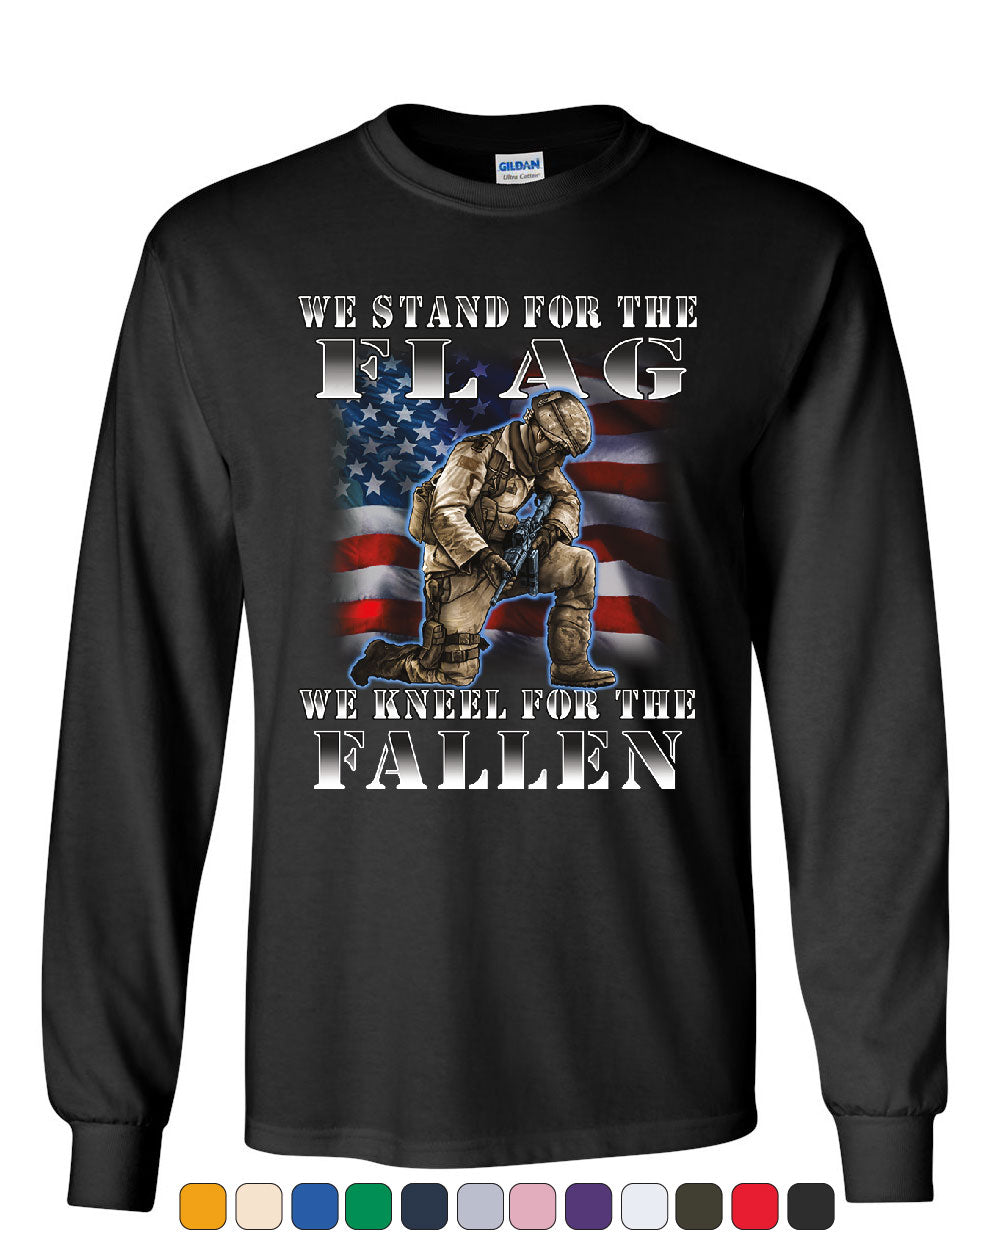 We Stand for the Flag Youth T-Shirt Veteran Military POW MIA Army Navy Kids Tee